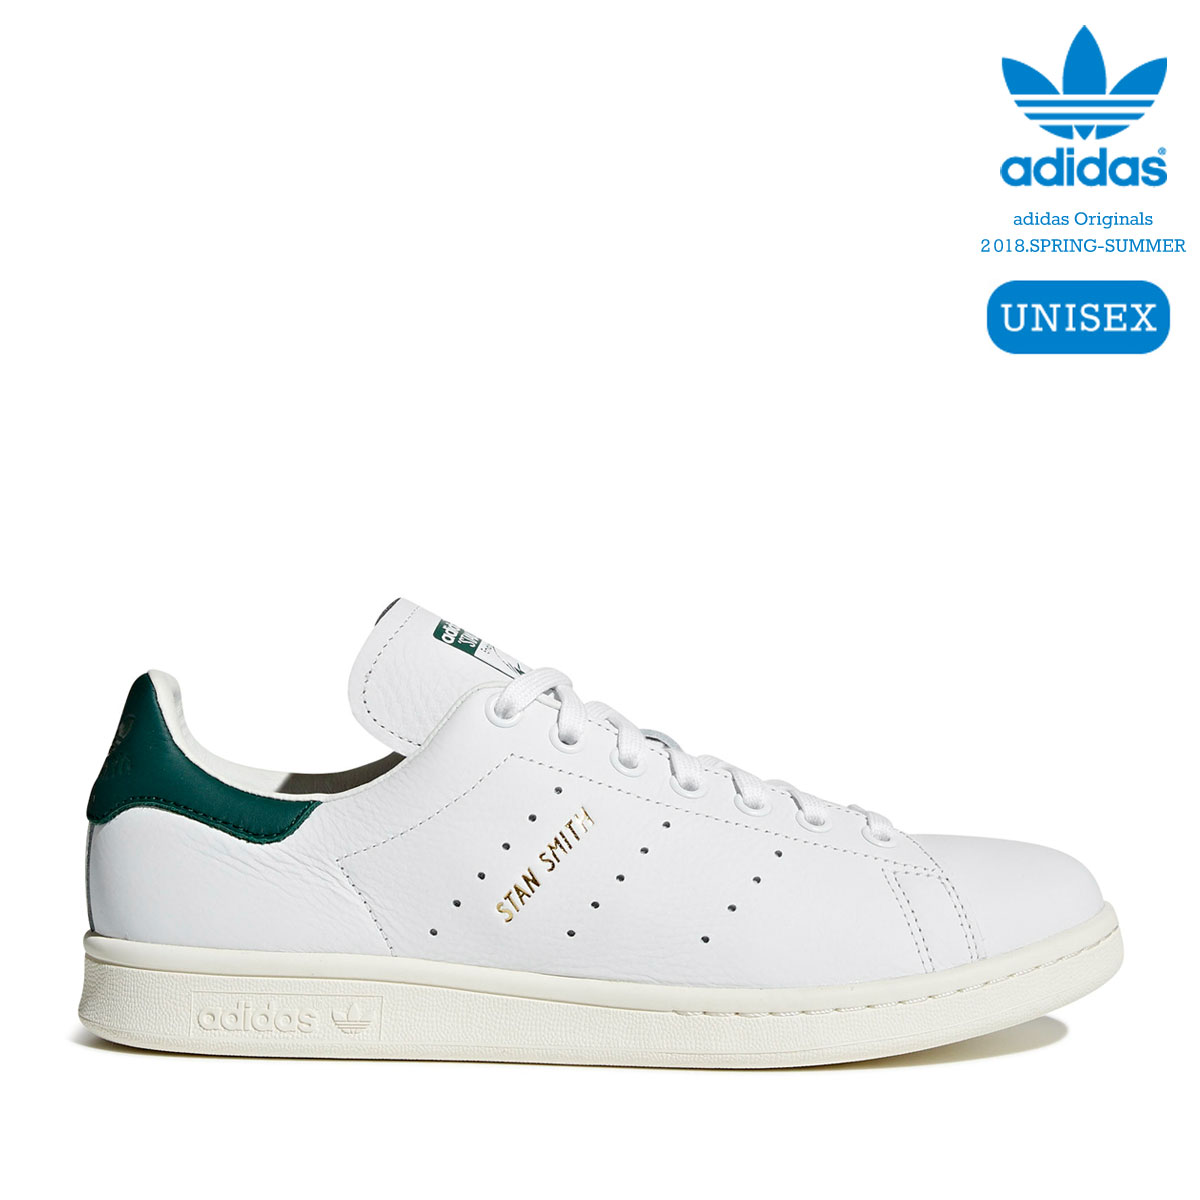 adidas Originals STAN SMITH (Running White/Running White/Collegiate Green) 【ユニセックスサイズ】【18SS-I】